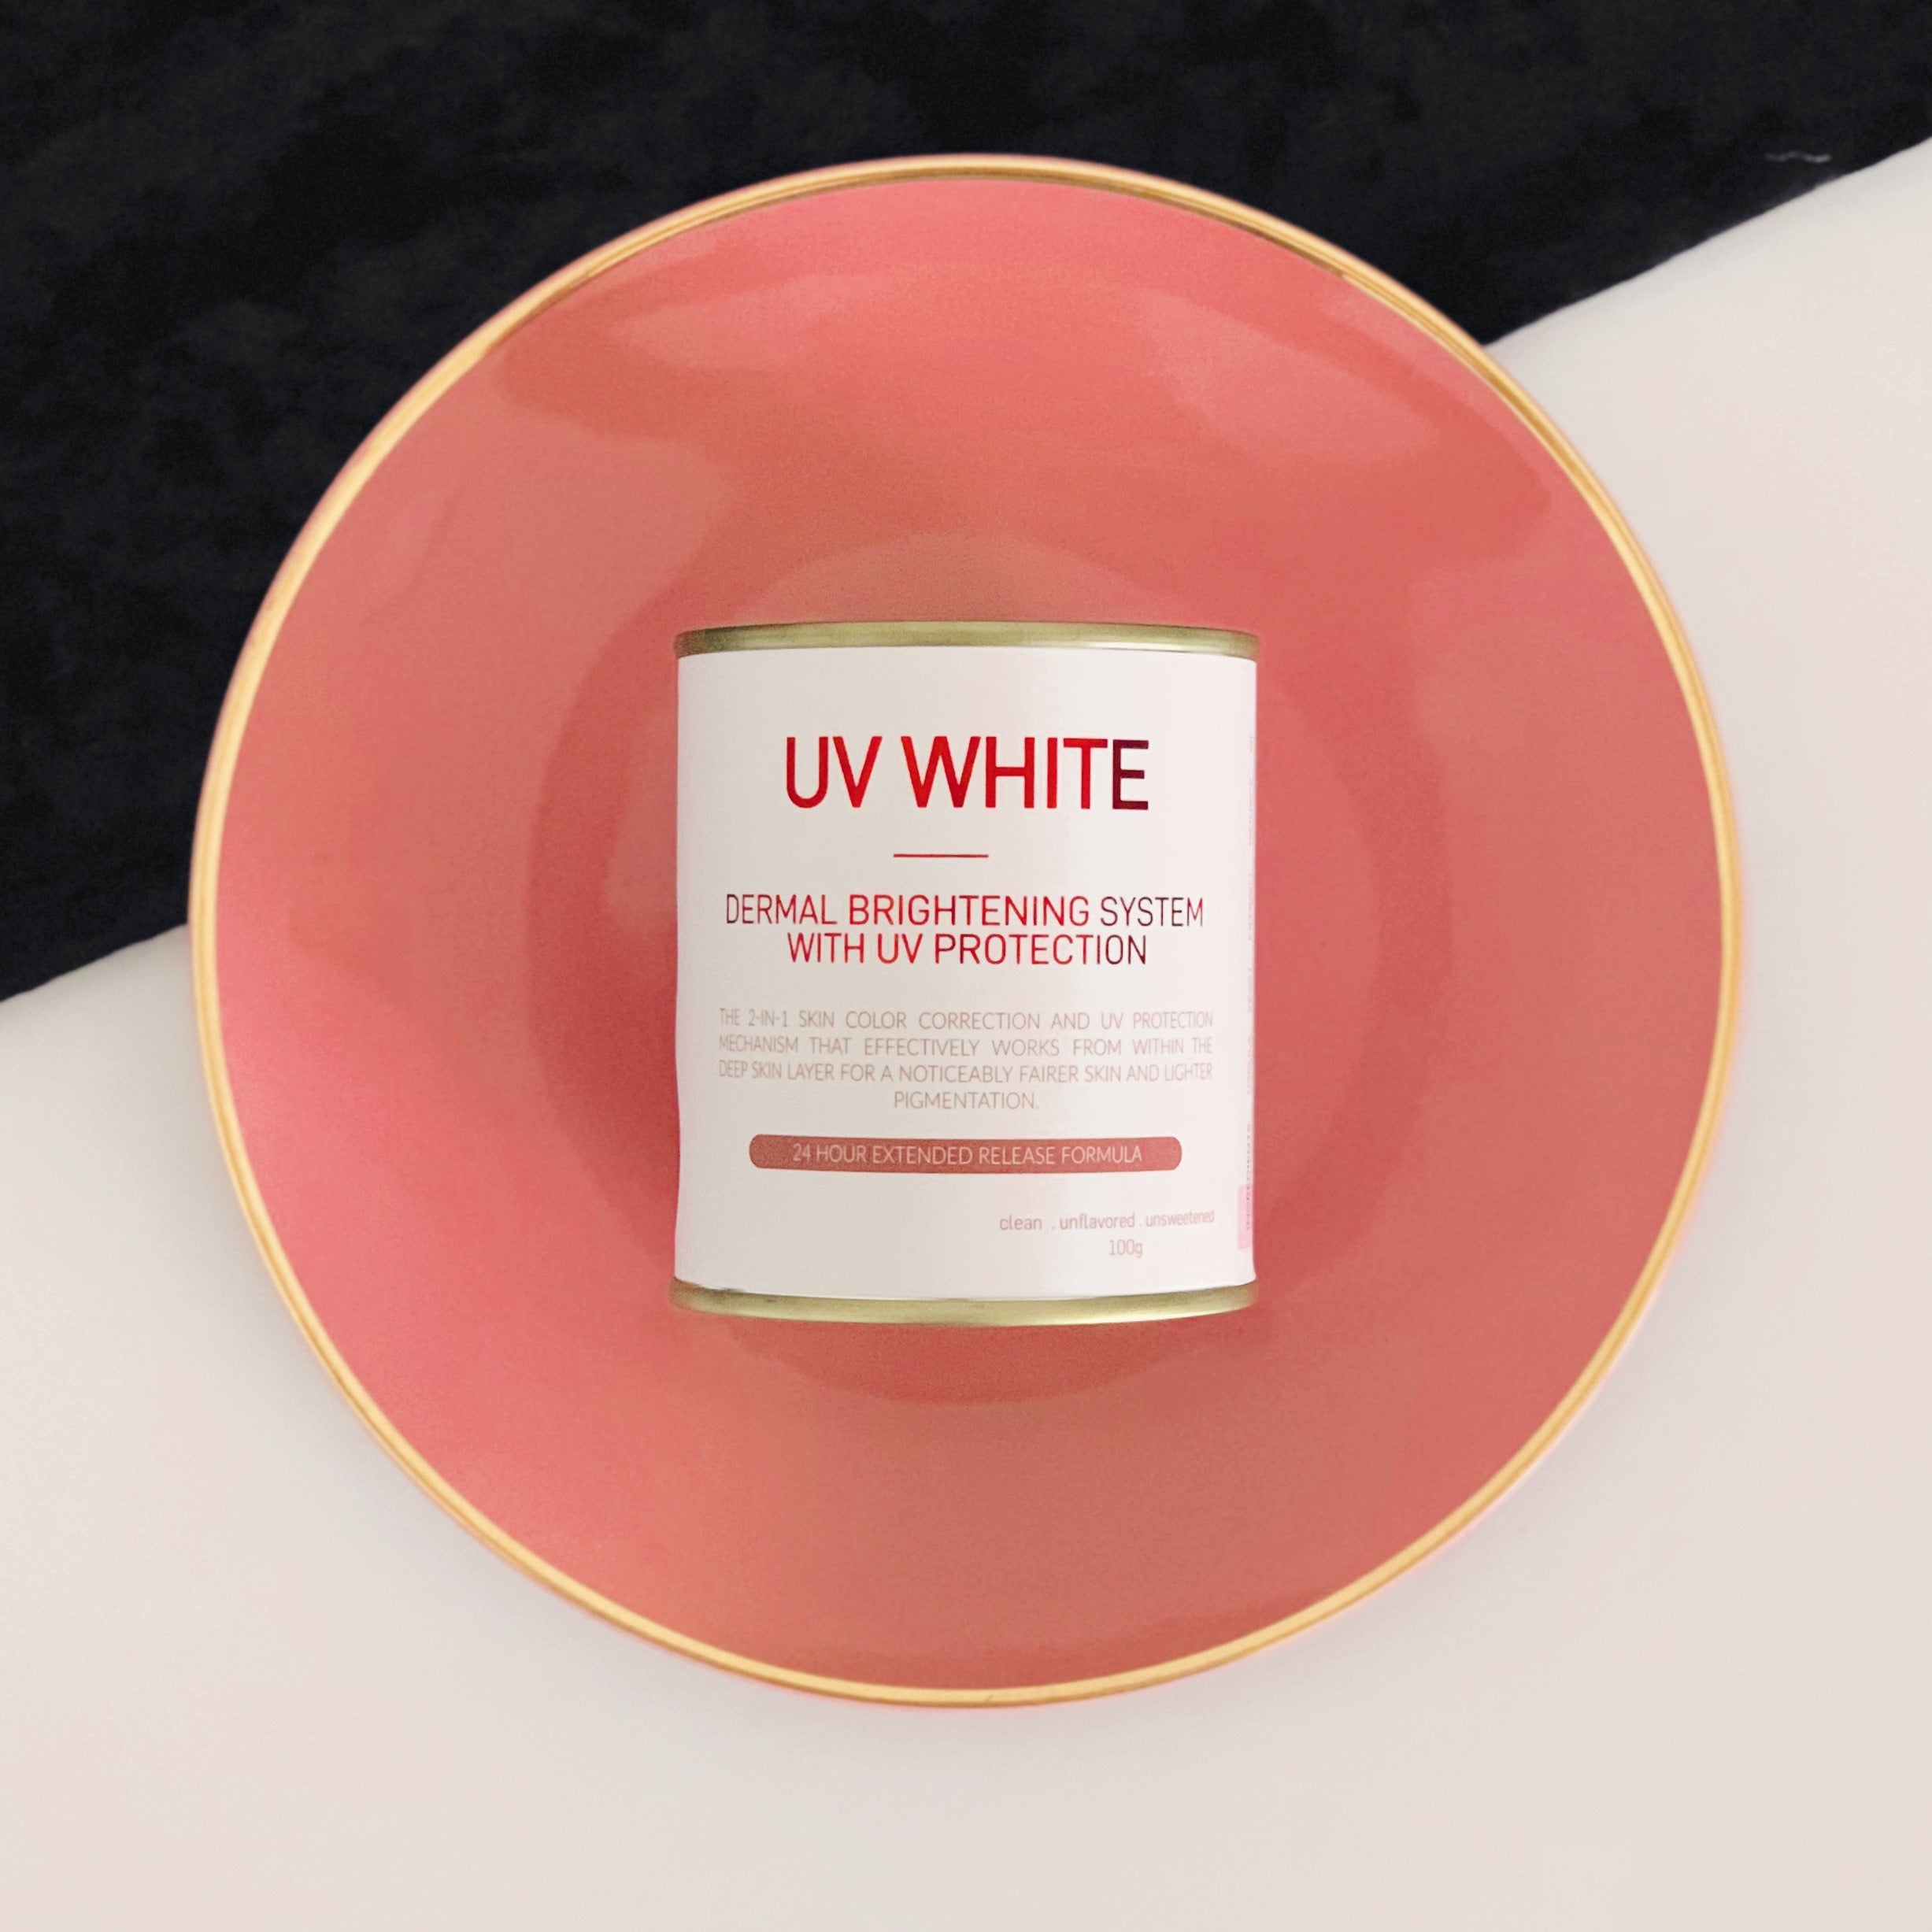 Project B UV White Dermal Brightening System - Project B